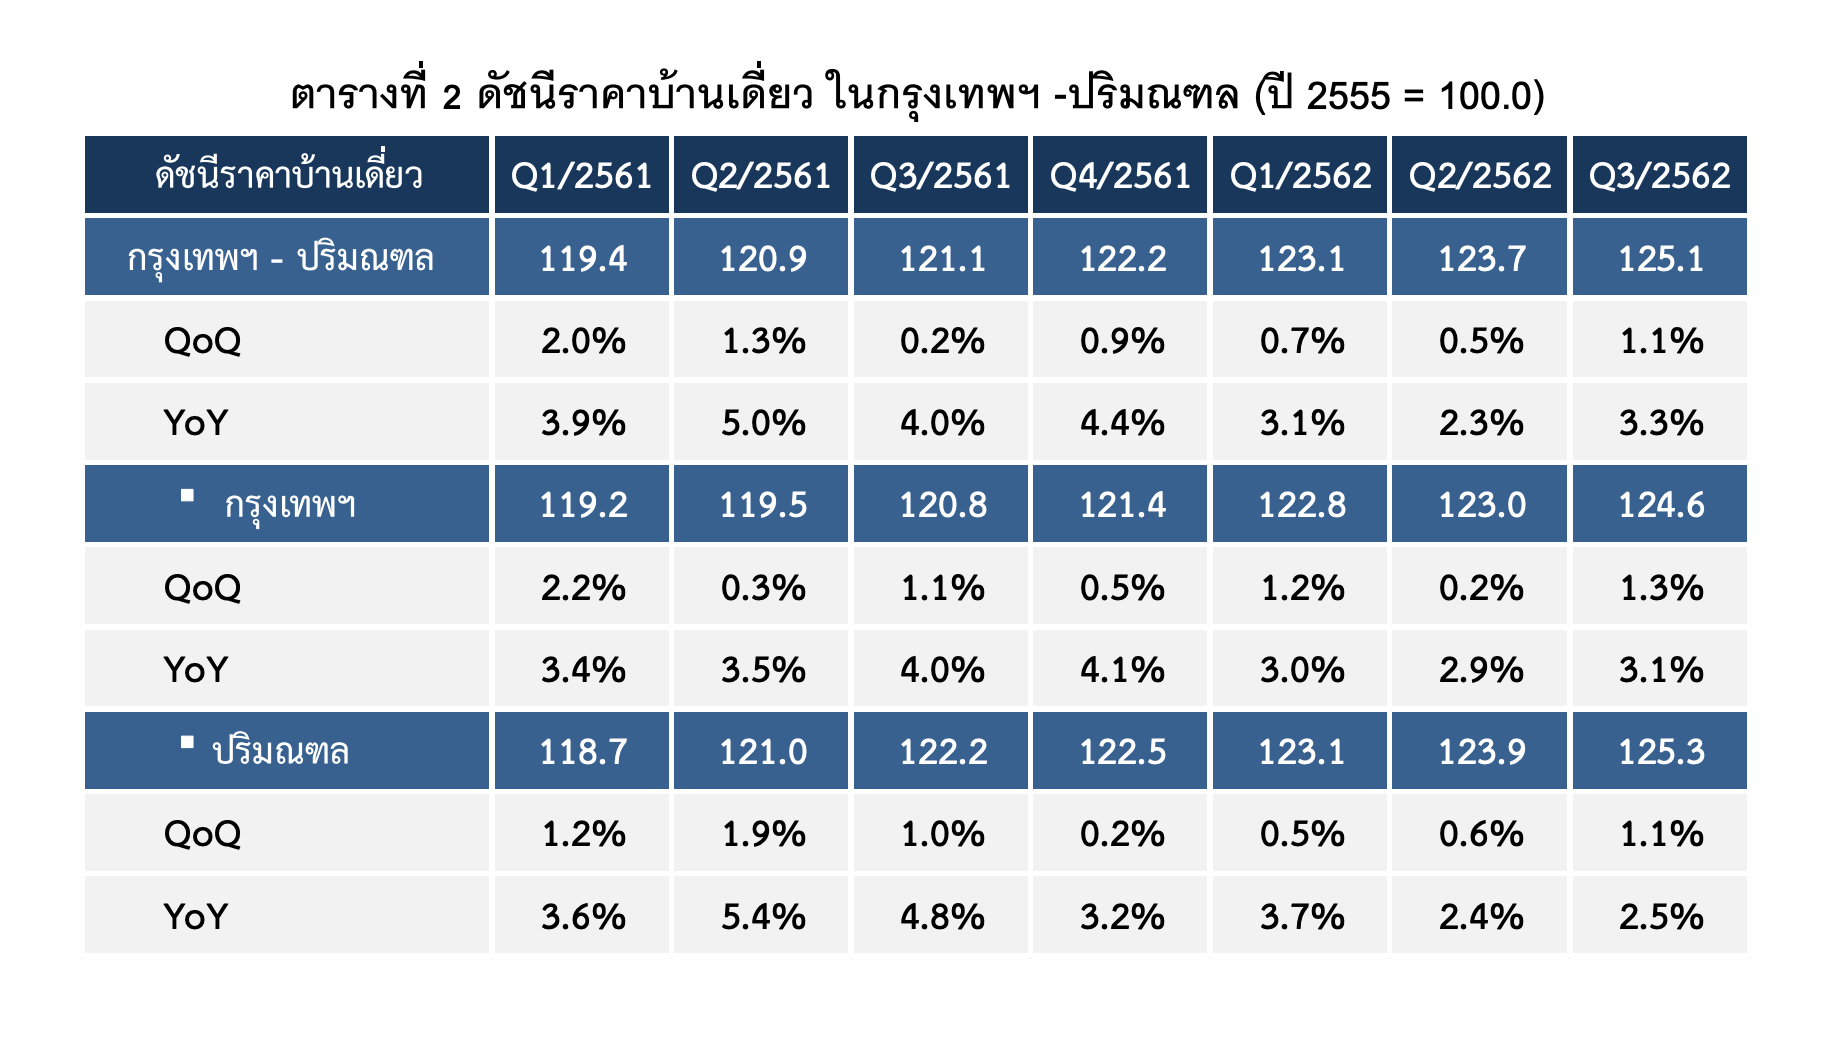 Direct Home Index Prioce Q3 2019